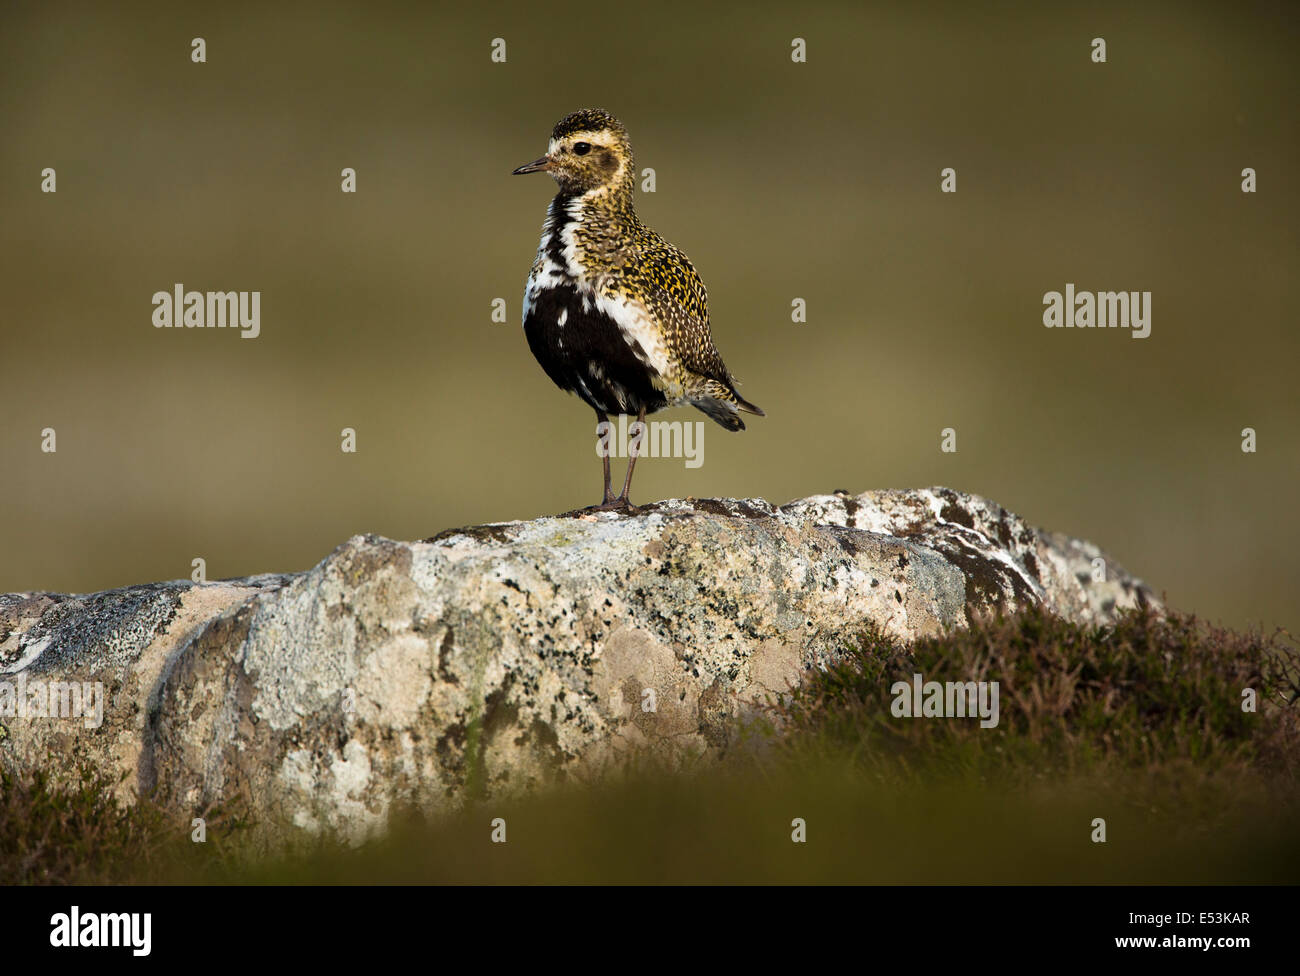 Golden Plover Stood On A Rock - Stock Image